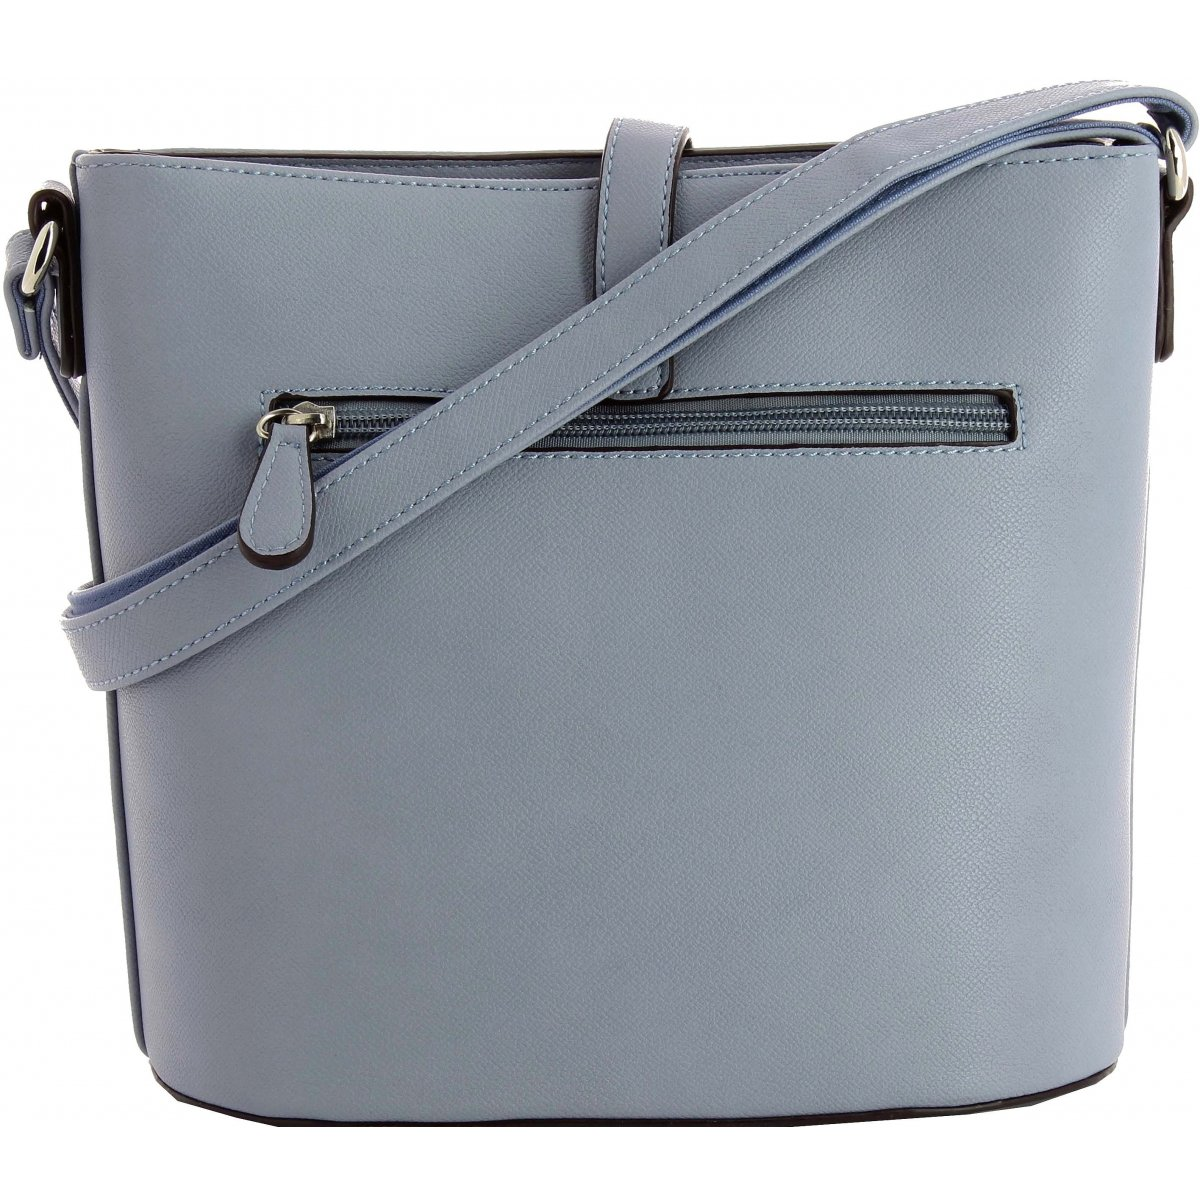 Sac A Main Bleu Pale : Sac ? main bandouli?re david jones dj couleur